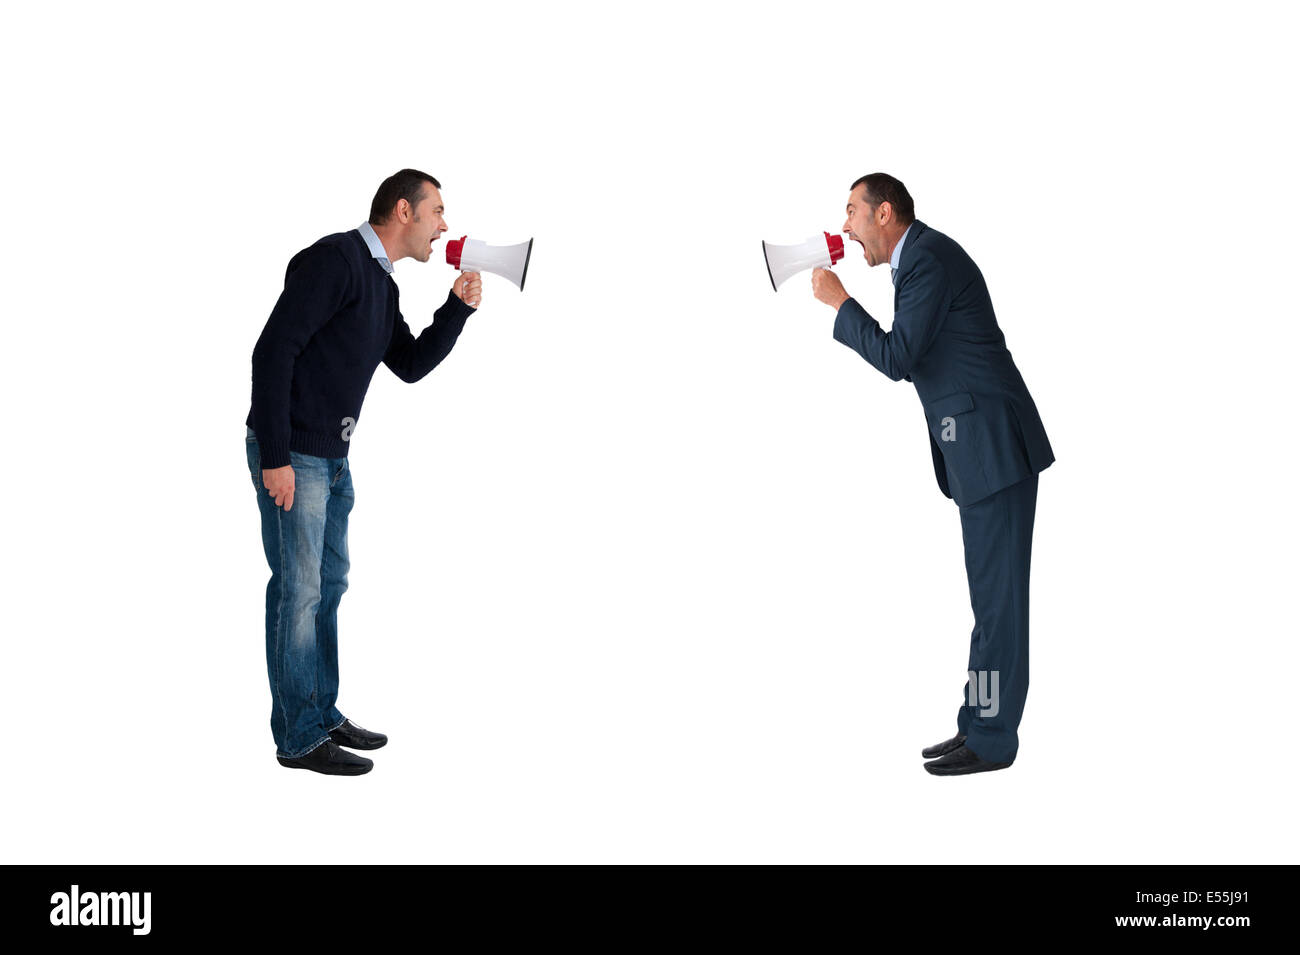 business concept men shouting with megaphones isolated on white background - Stock Image